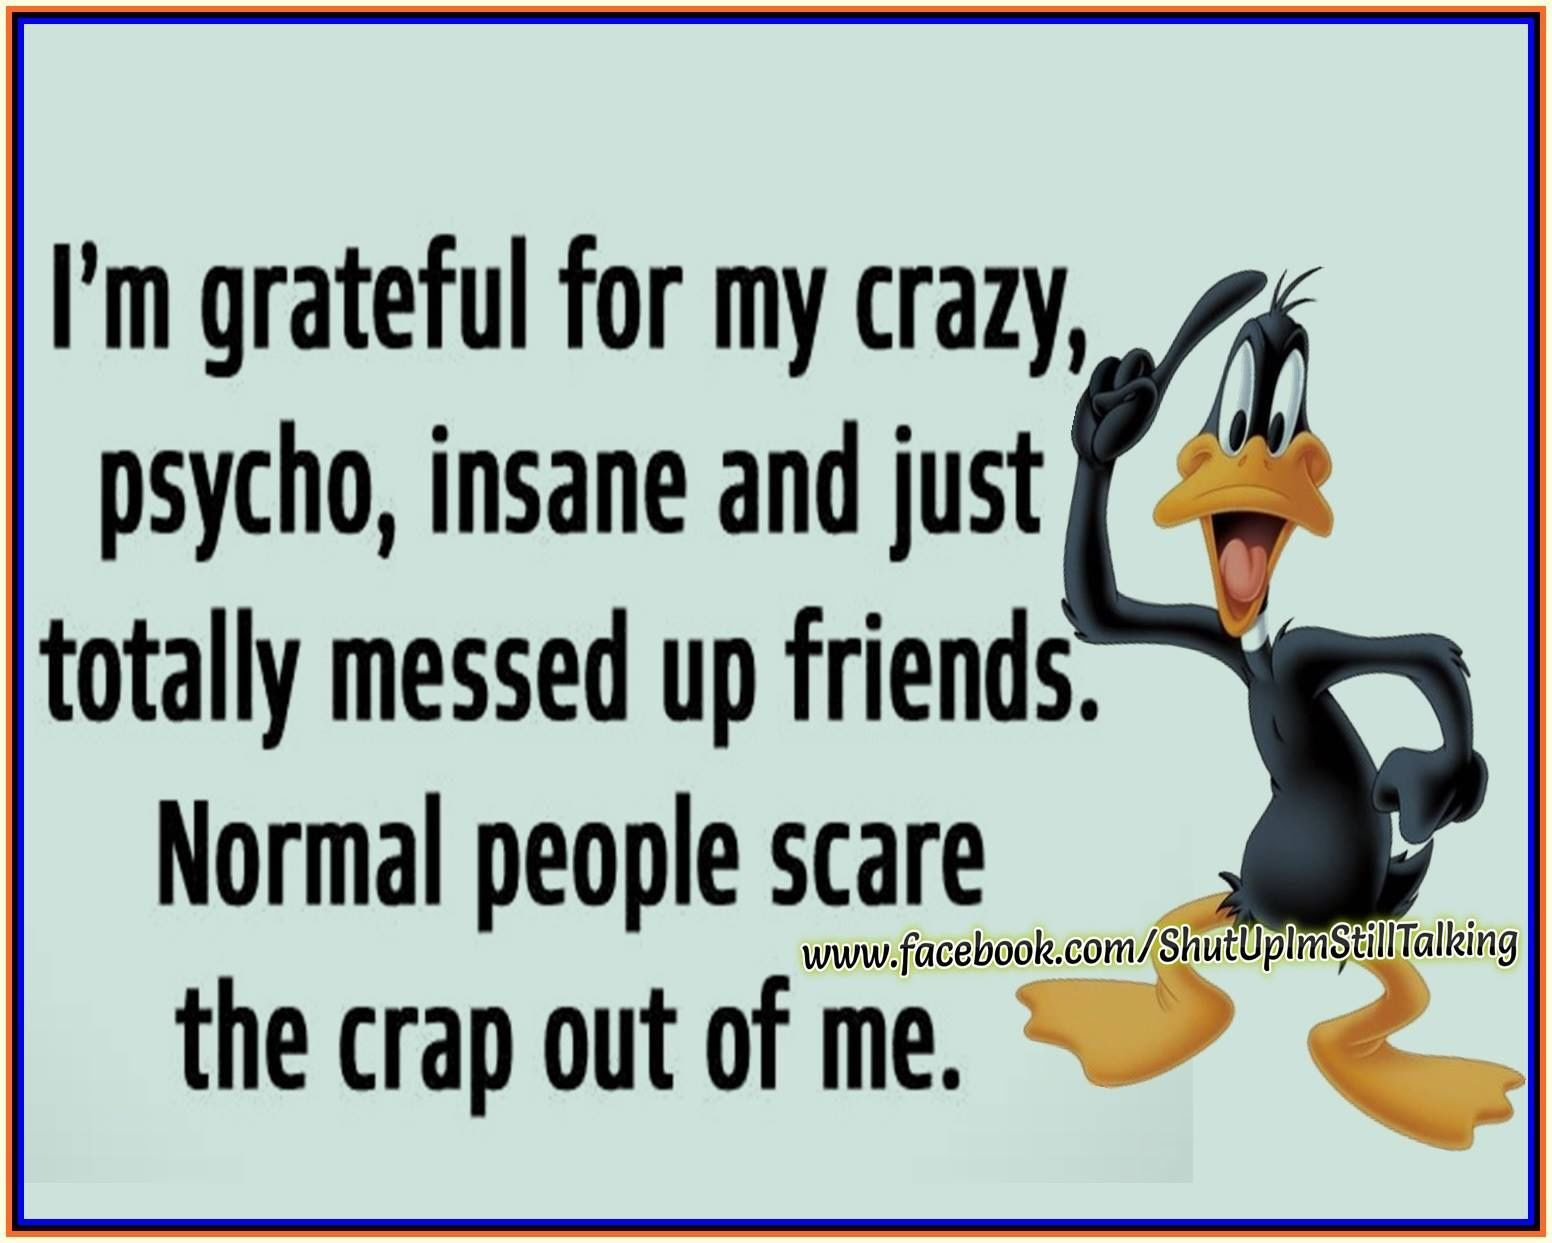 I Am Grateful For My Crazy Friends Pictures, Photos, and Images for Facebook, Tumblr, Pinterest